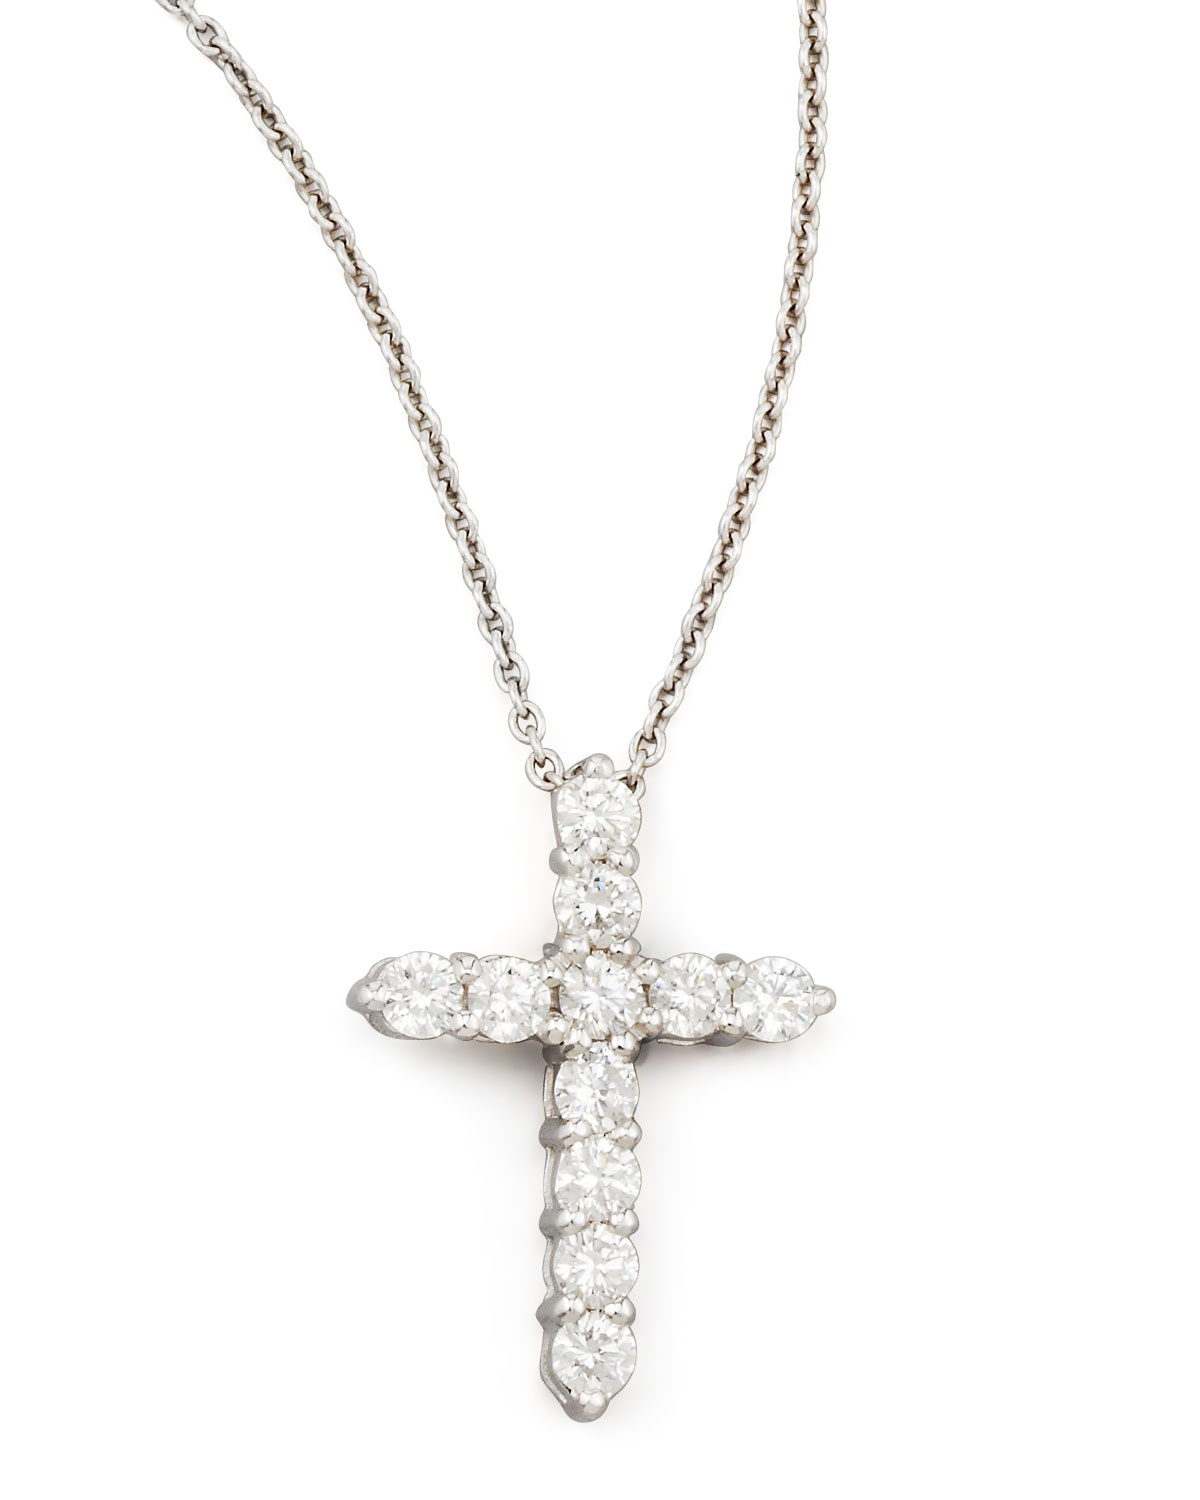 roberto coin 18 white gold diamond cross pendant necklace. Black Bedroom Furniture Sets. Home Design Ideas